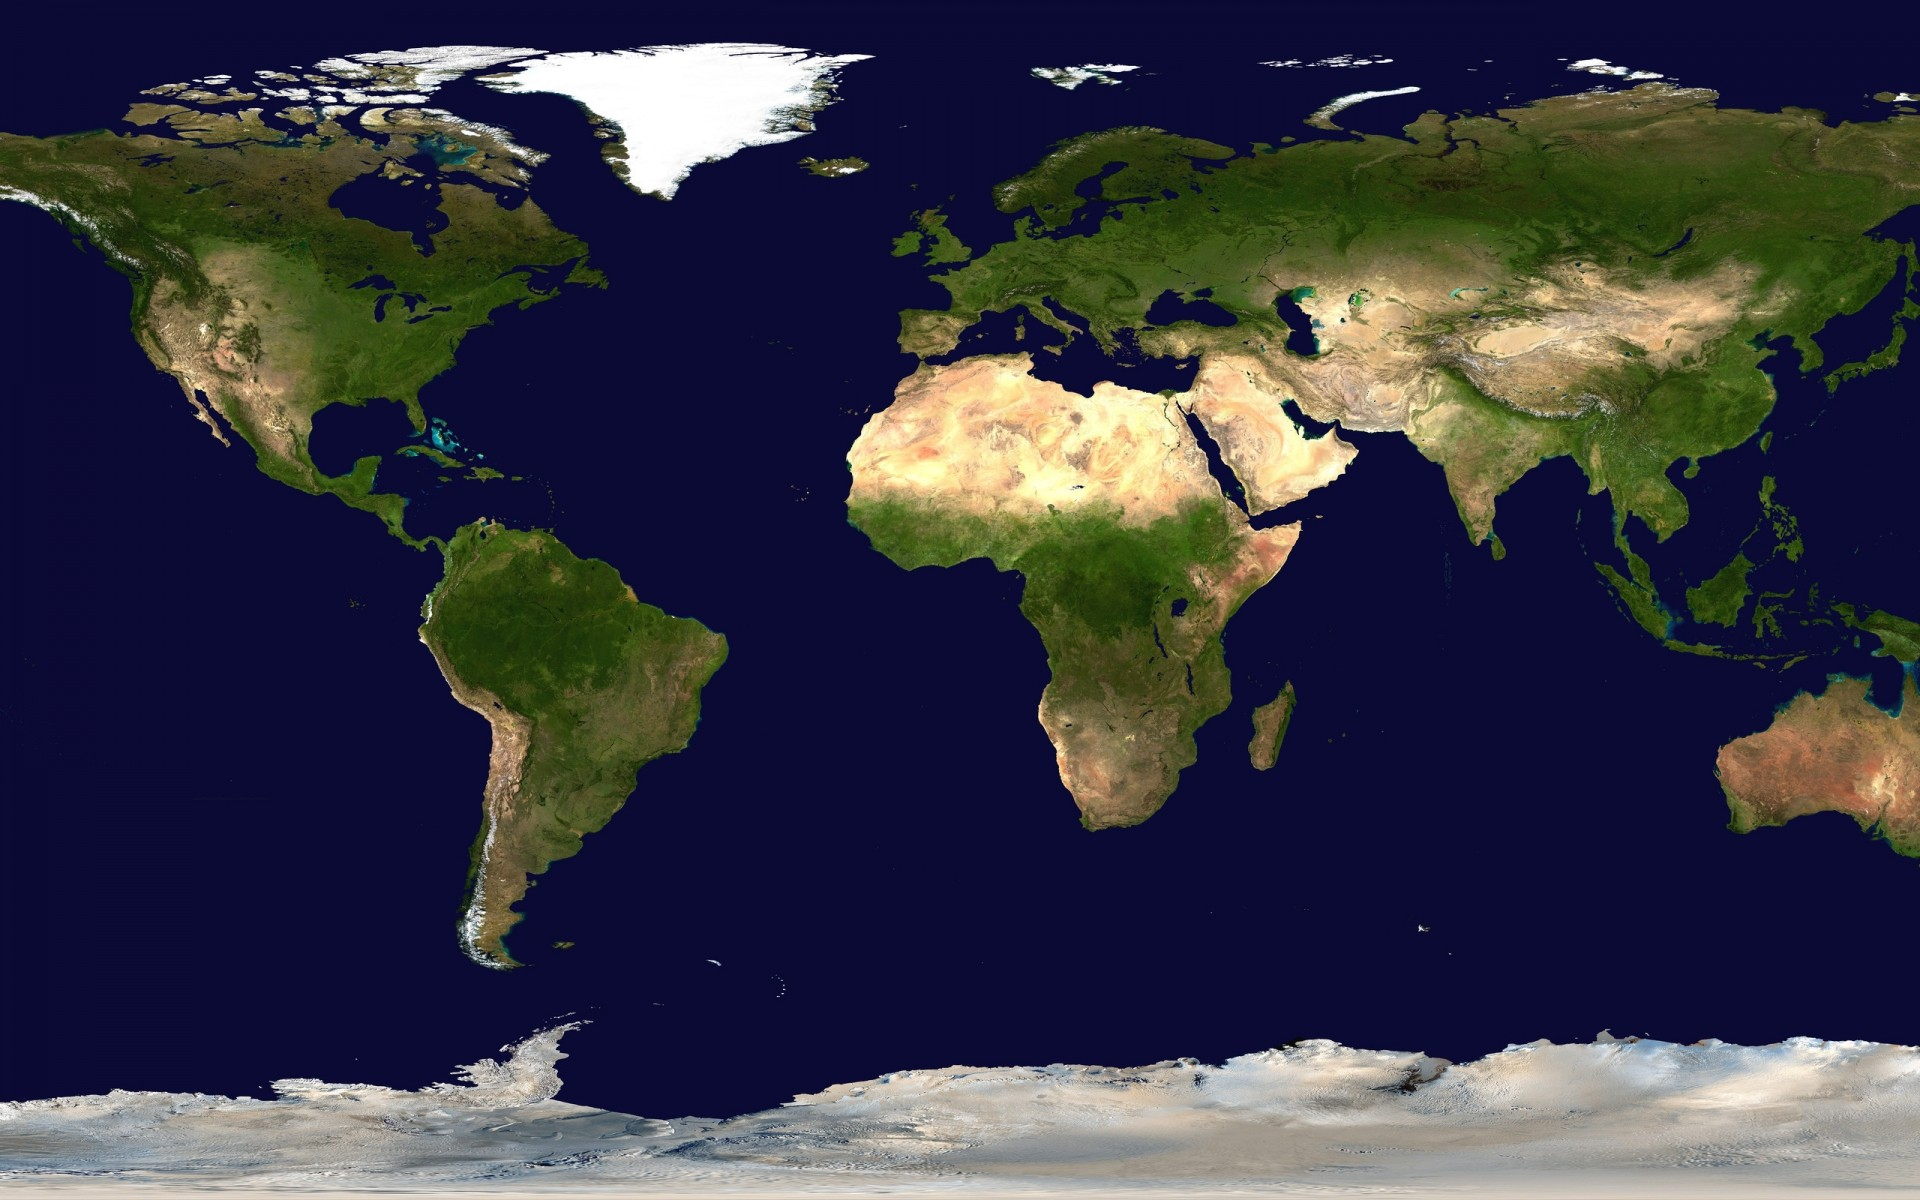 Clean World Map Desktop Wallpapers For Free